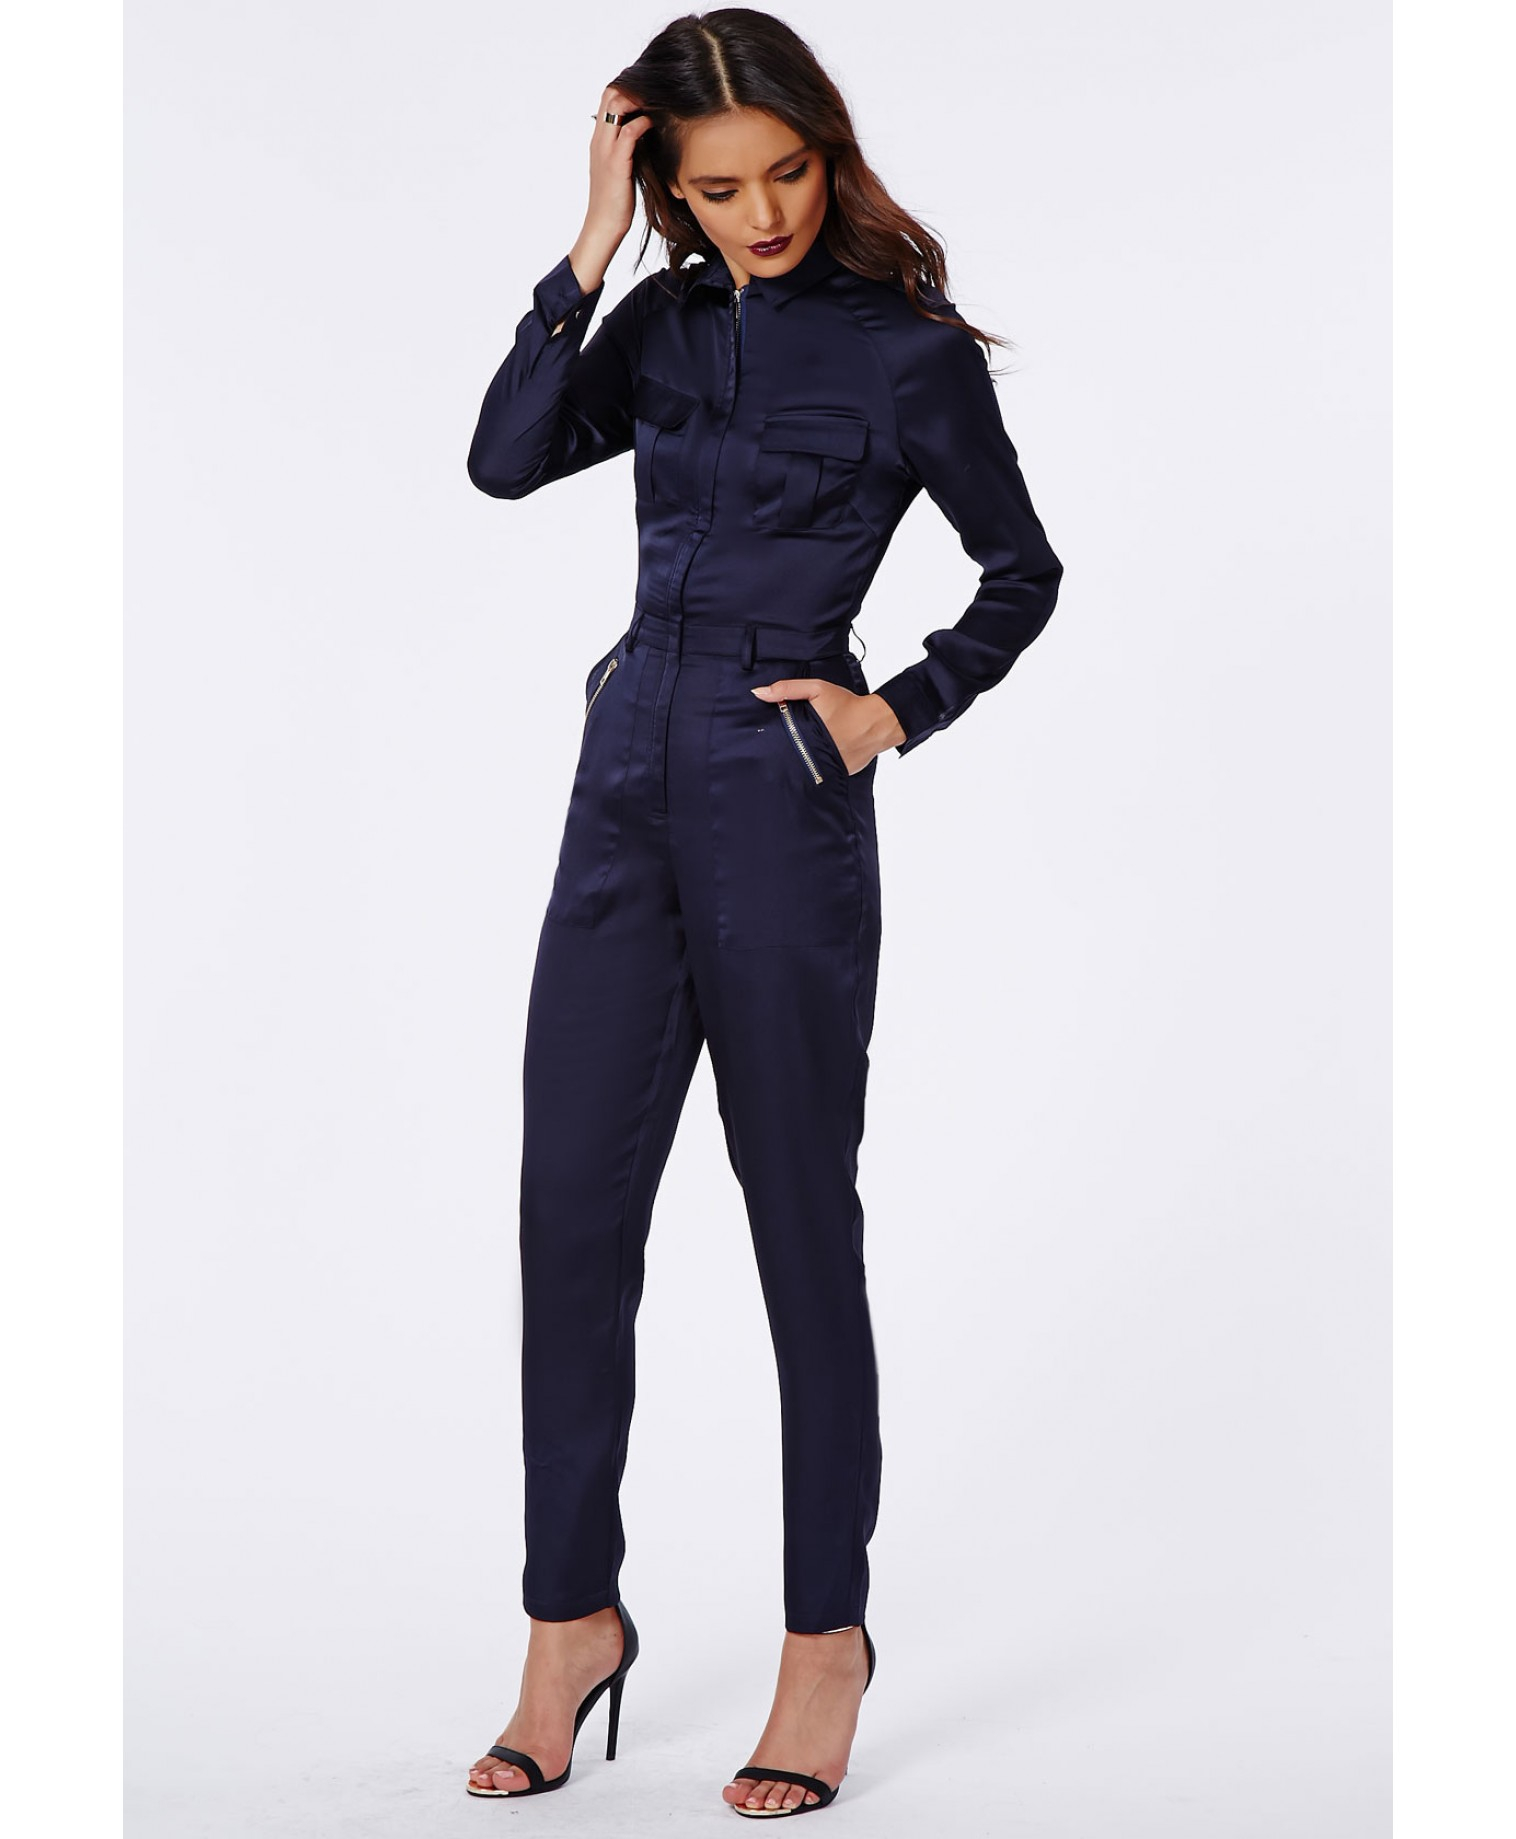 31207a010 Missguided Annabelle Utility Style Long Sleeve Jumpsuit Navy in Blue ...